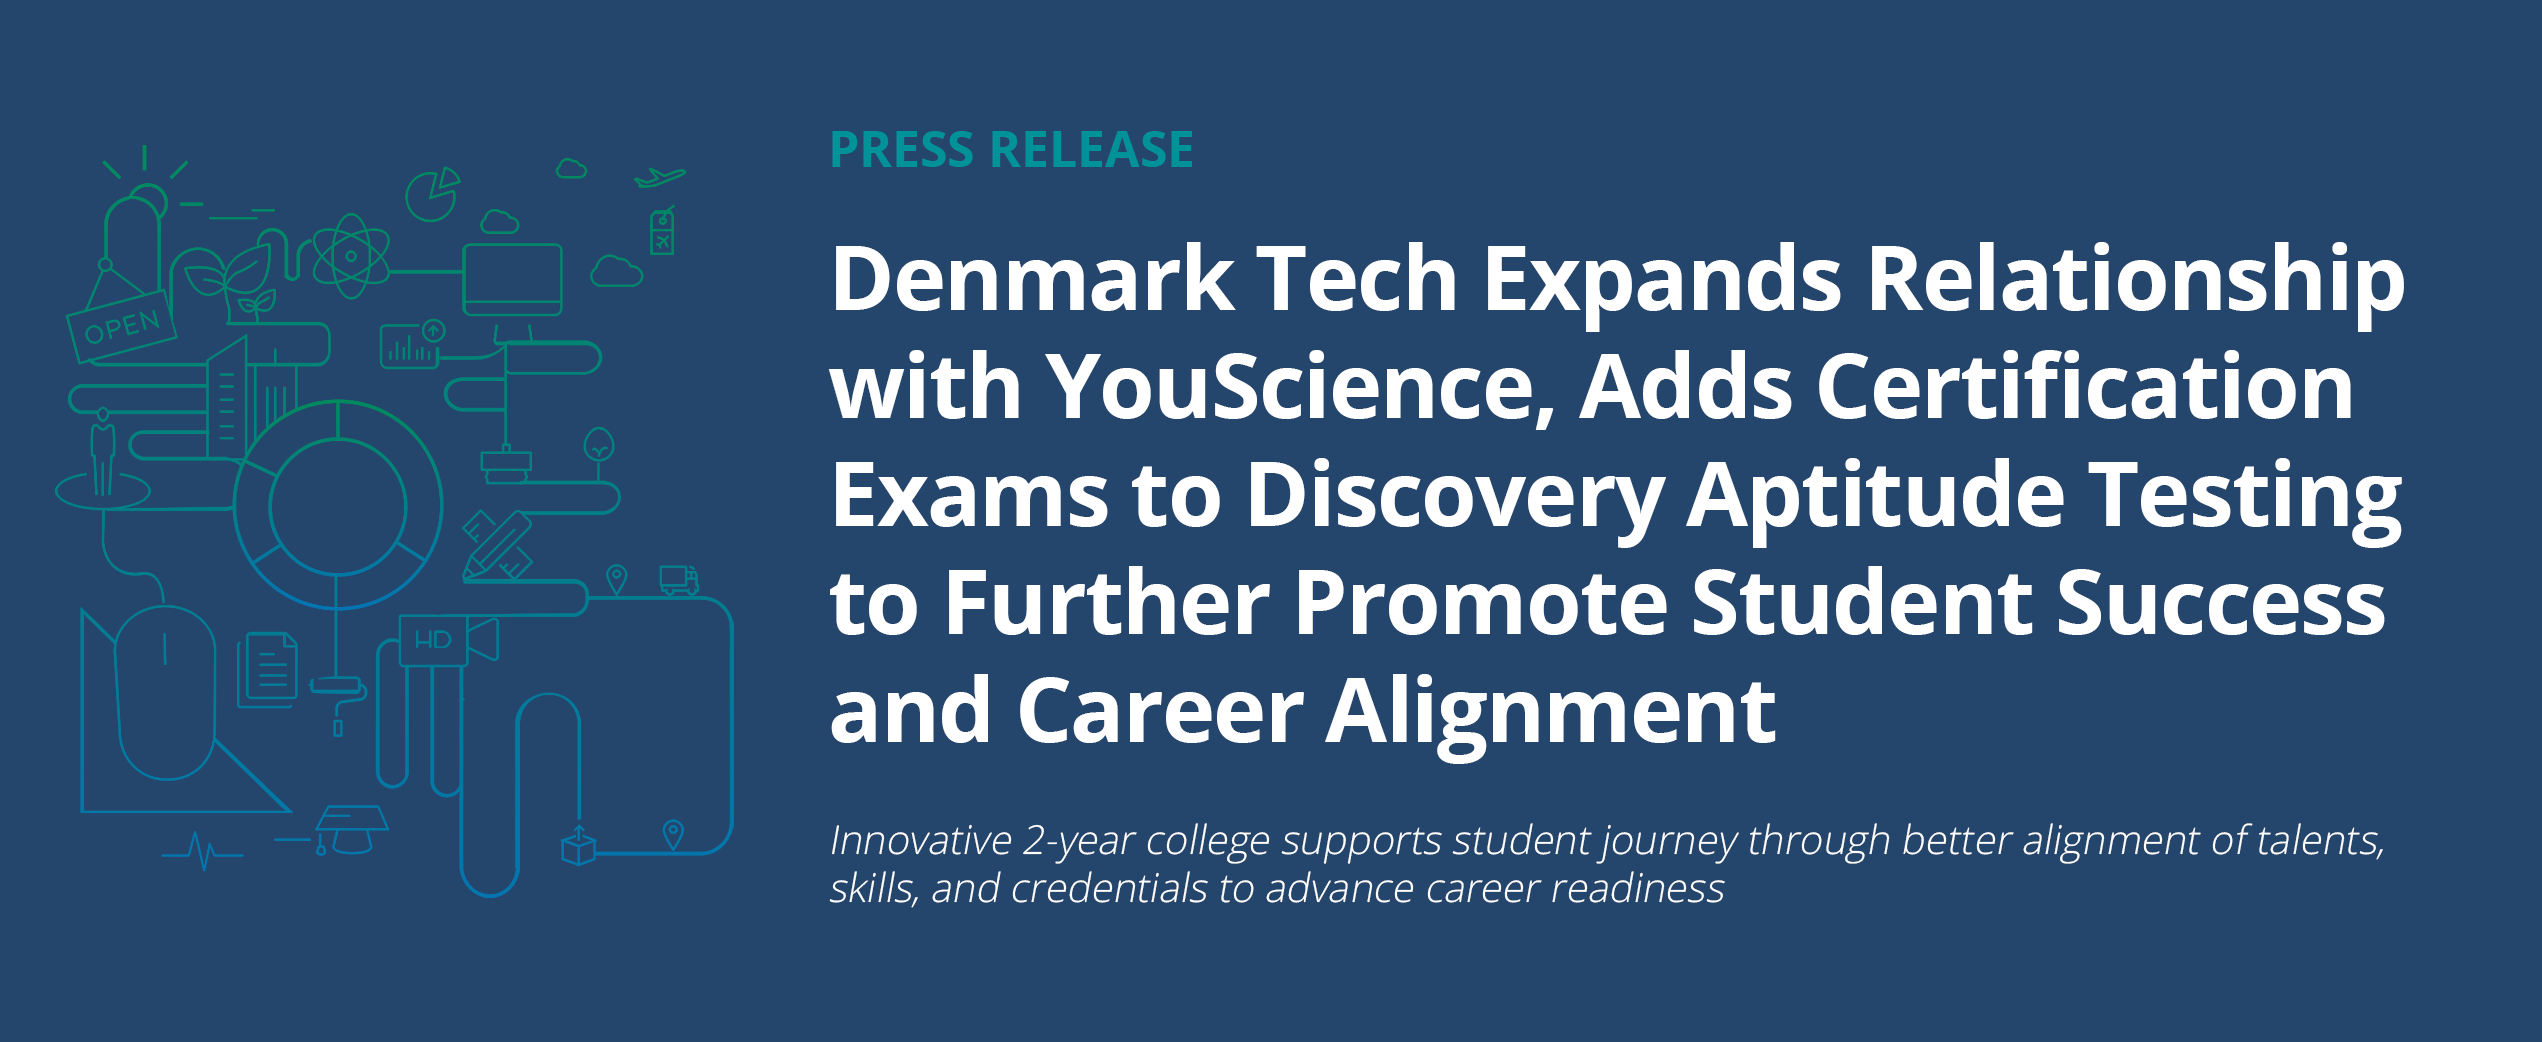 Denmark Tech Expands Relationship with YouScience, Adds Certification Exams to Discovery Aptitude Testing to Further Promote Student Success and Career Alignment